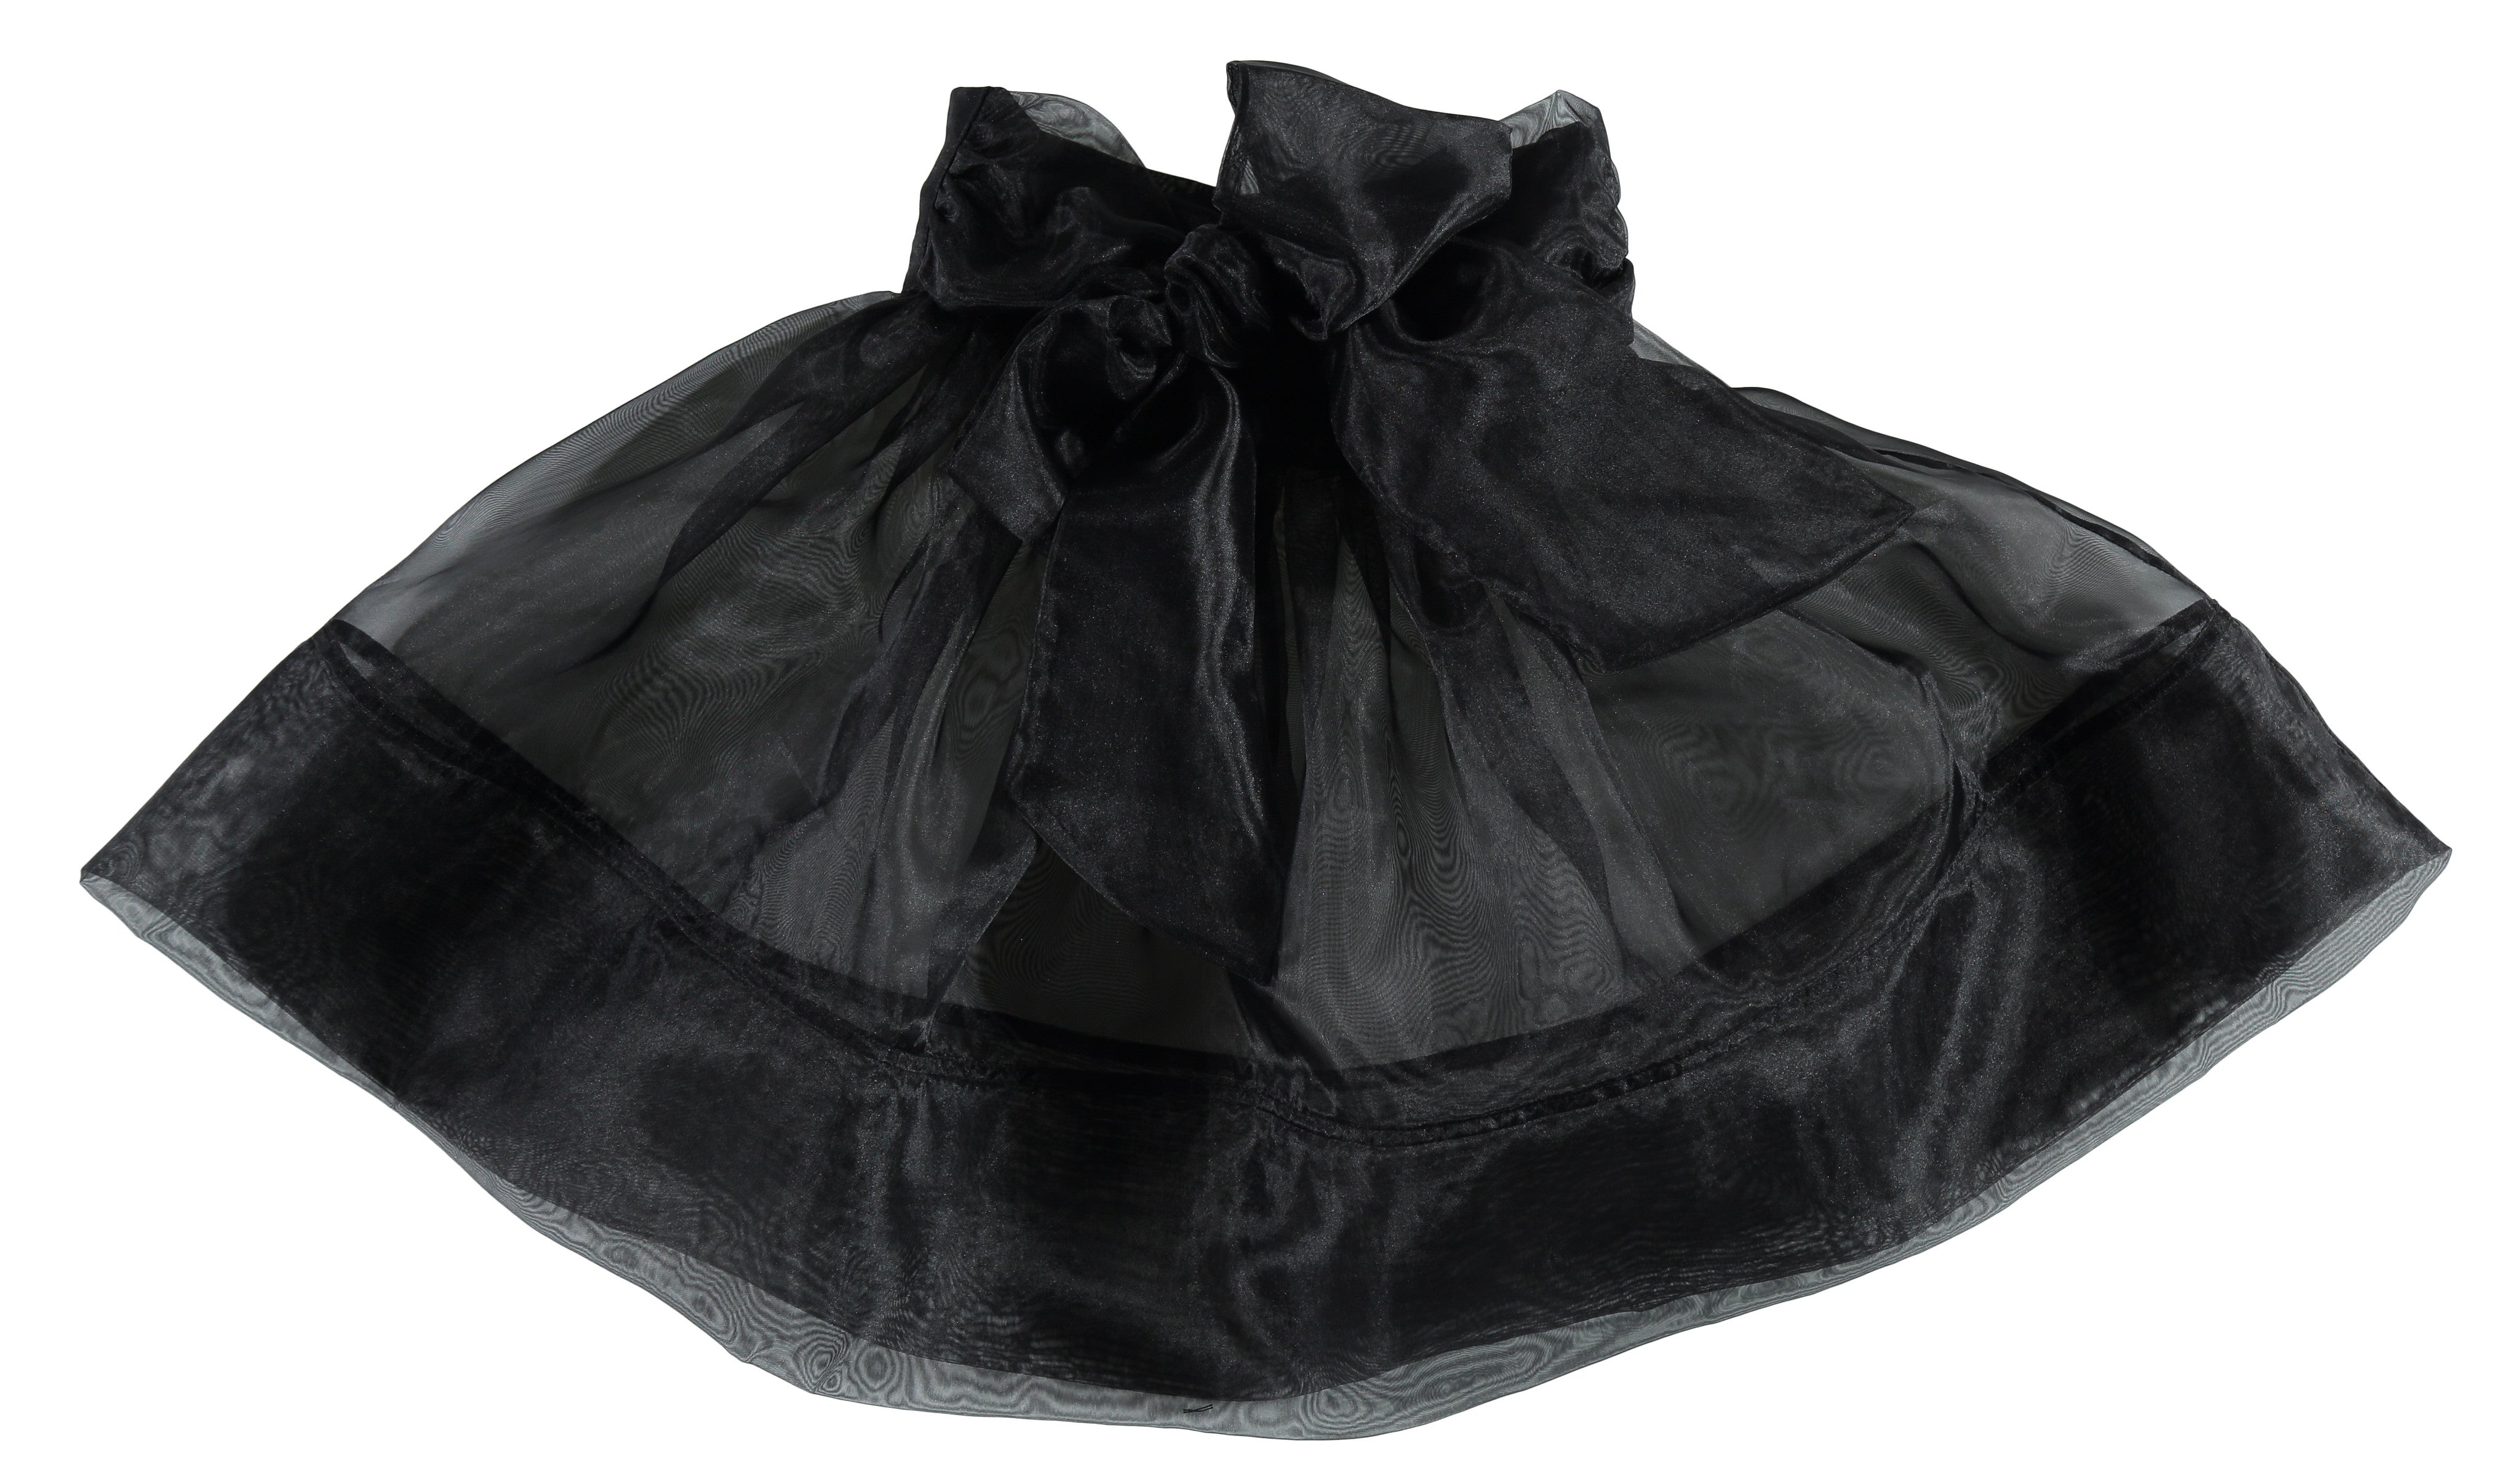 Carbon Soldier Black Flax Snail Skirt